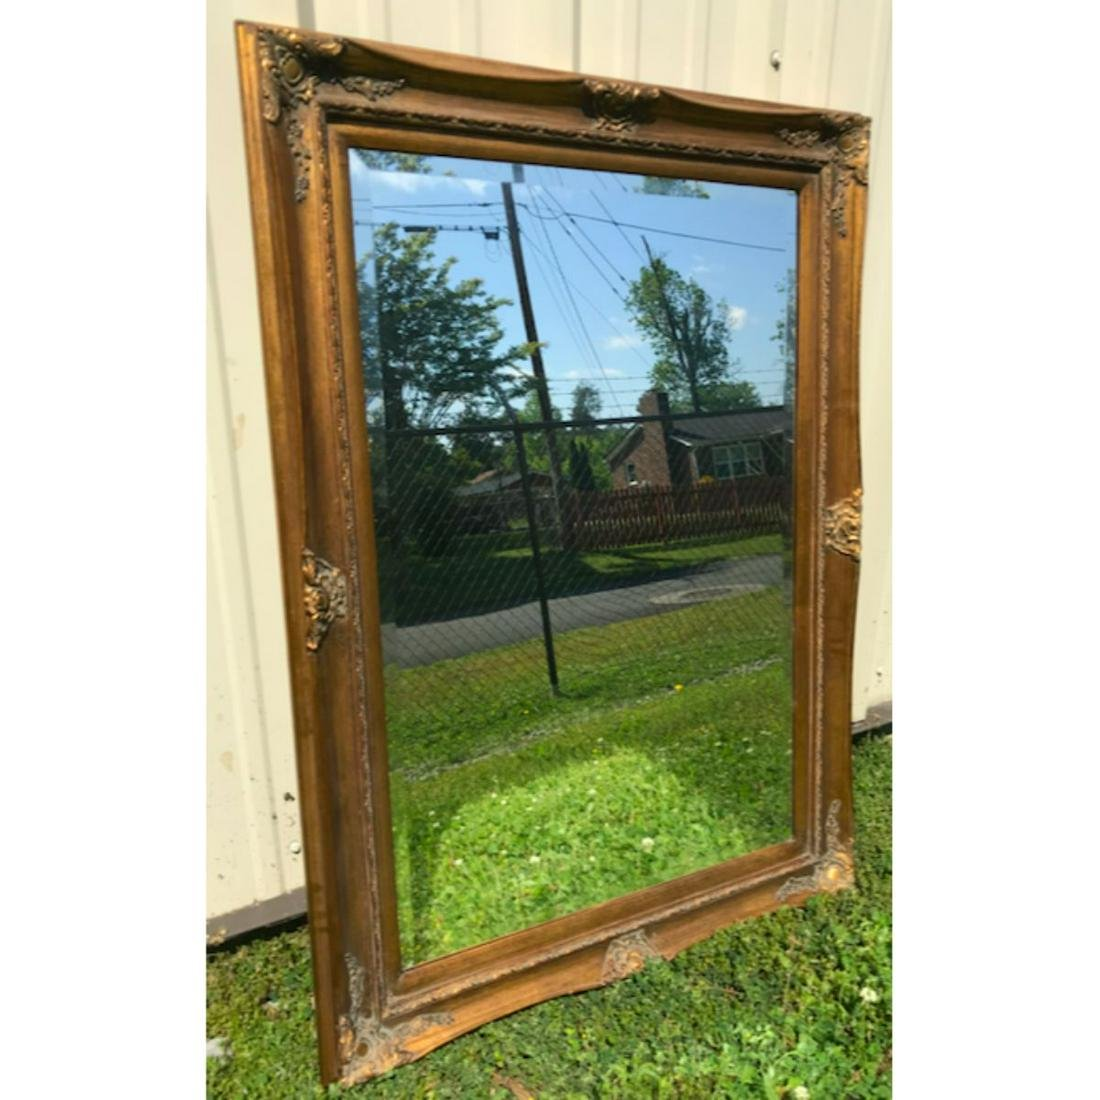 Antique-style Carved Gilt Wood Beveled Mirror